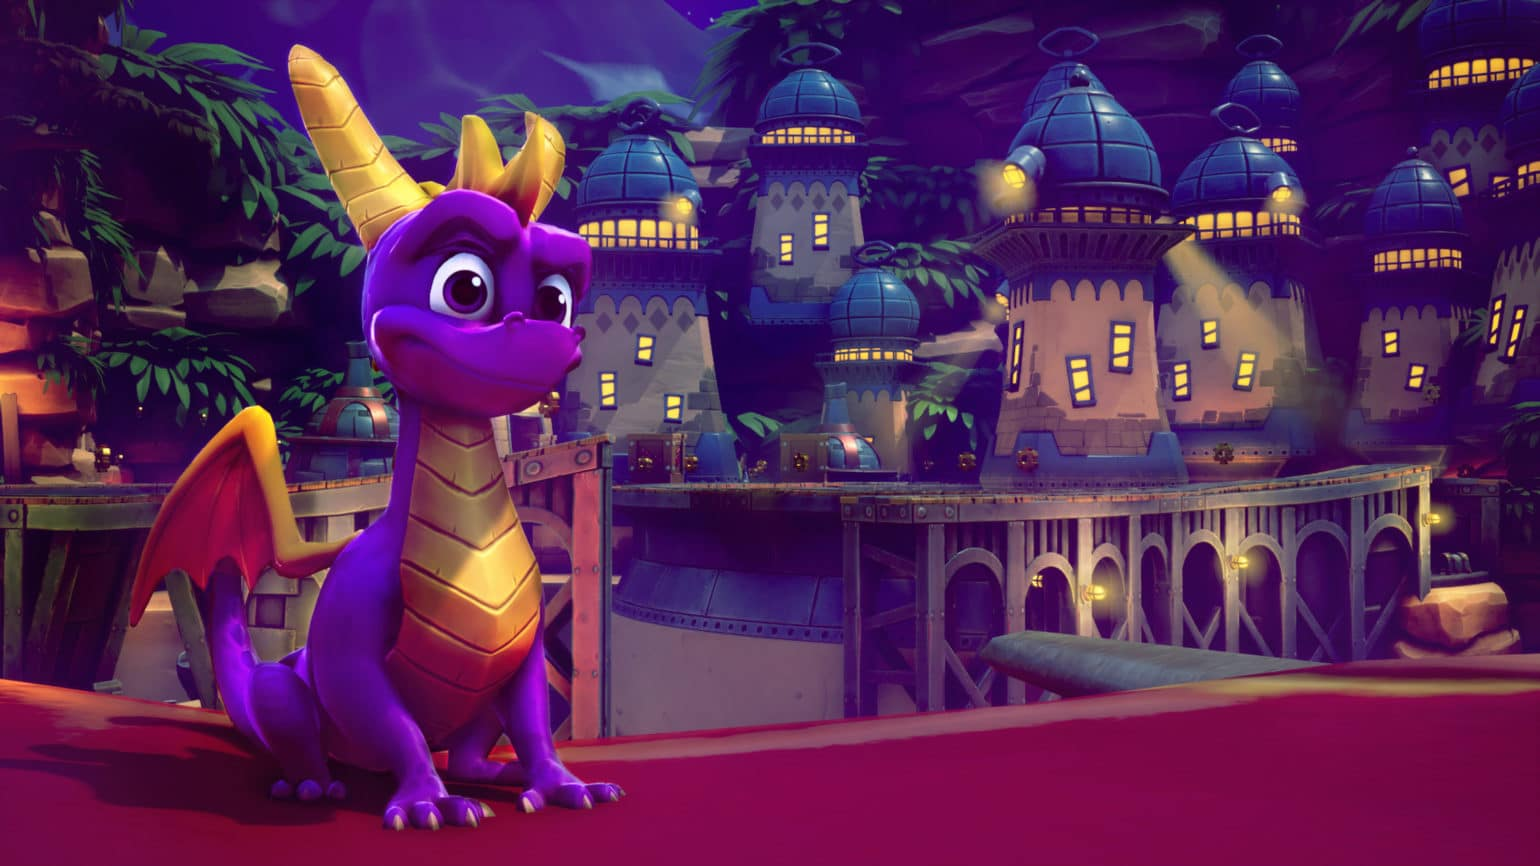 spyro: reignited trilogy dragon devant ville